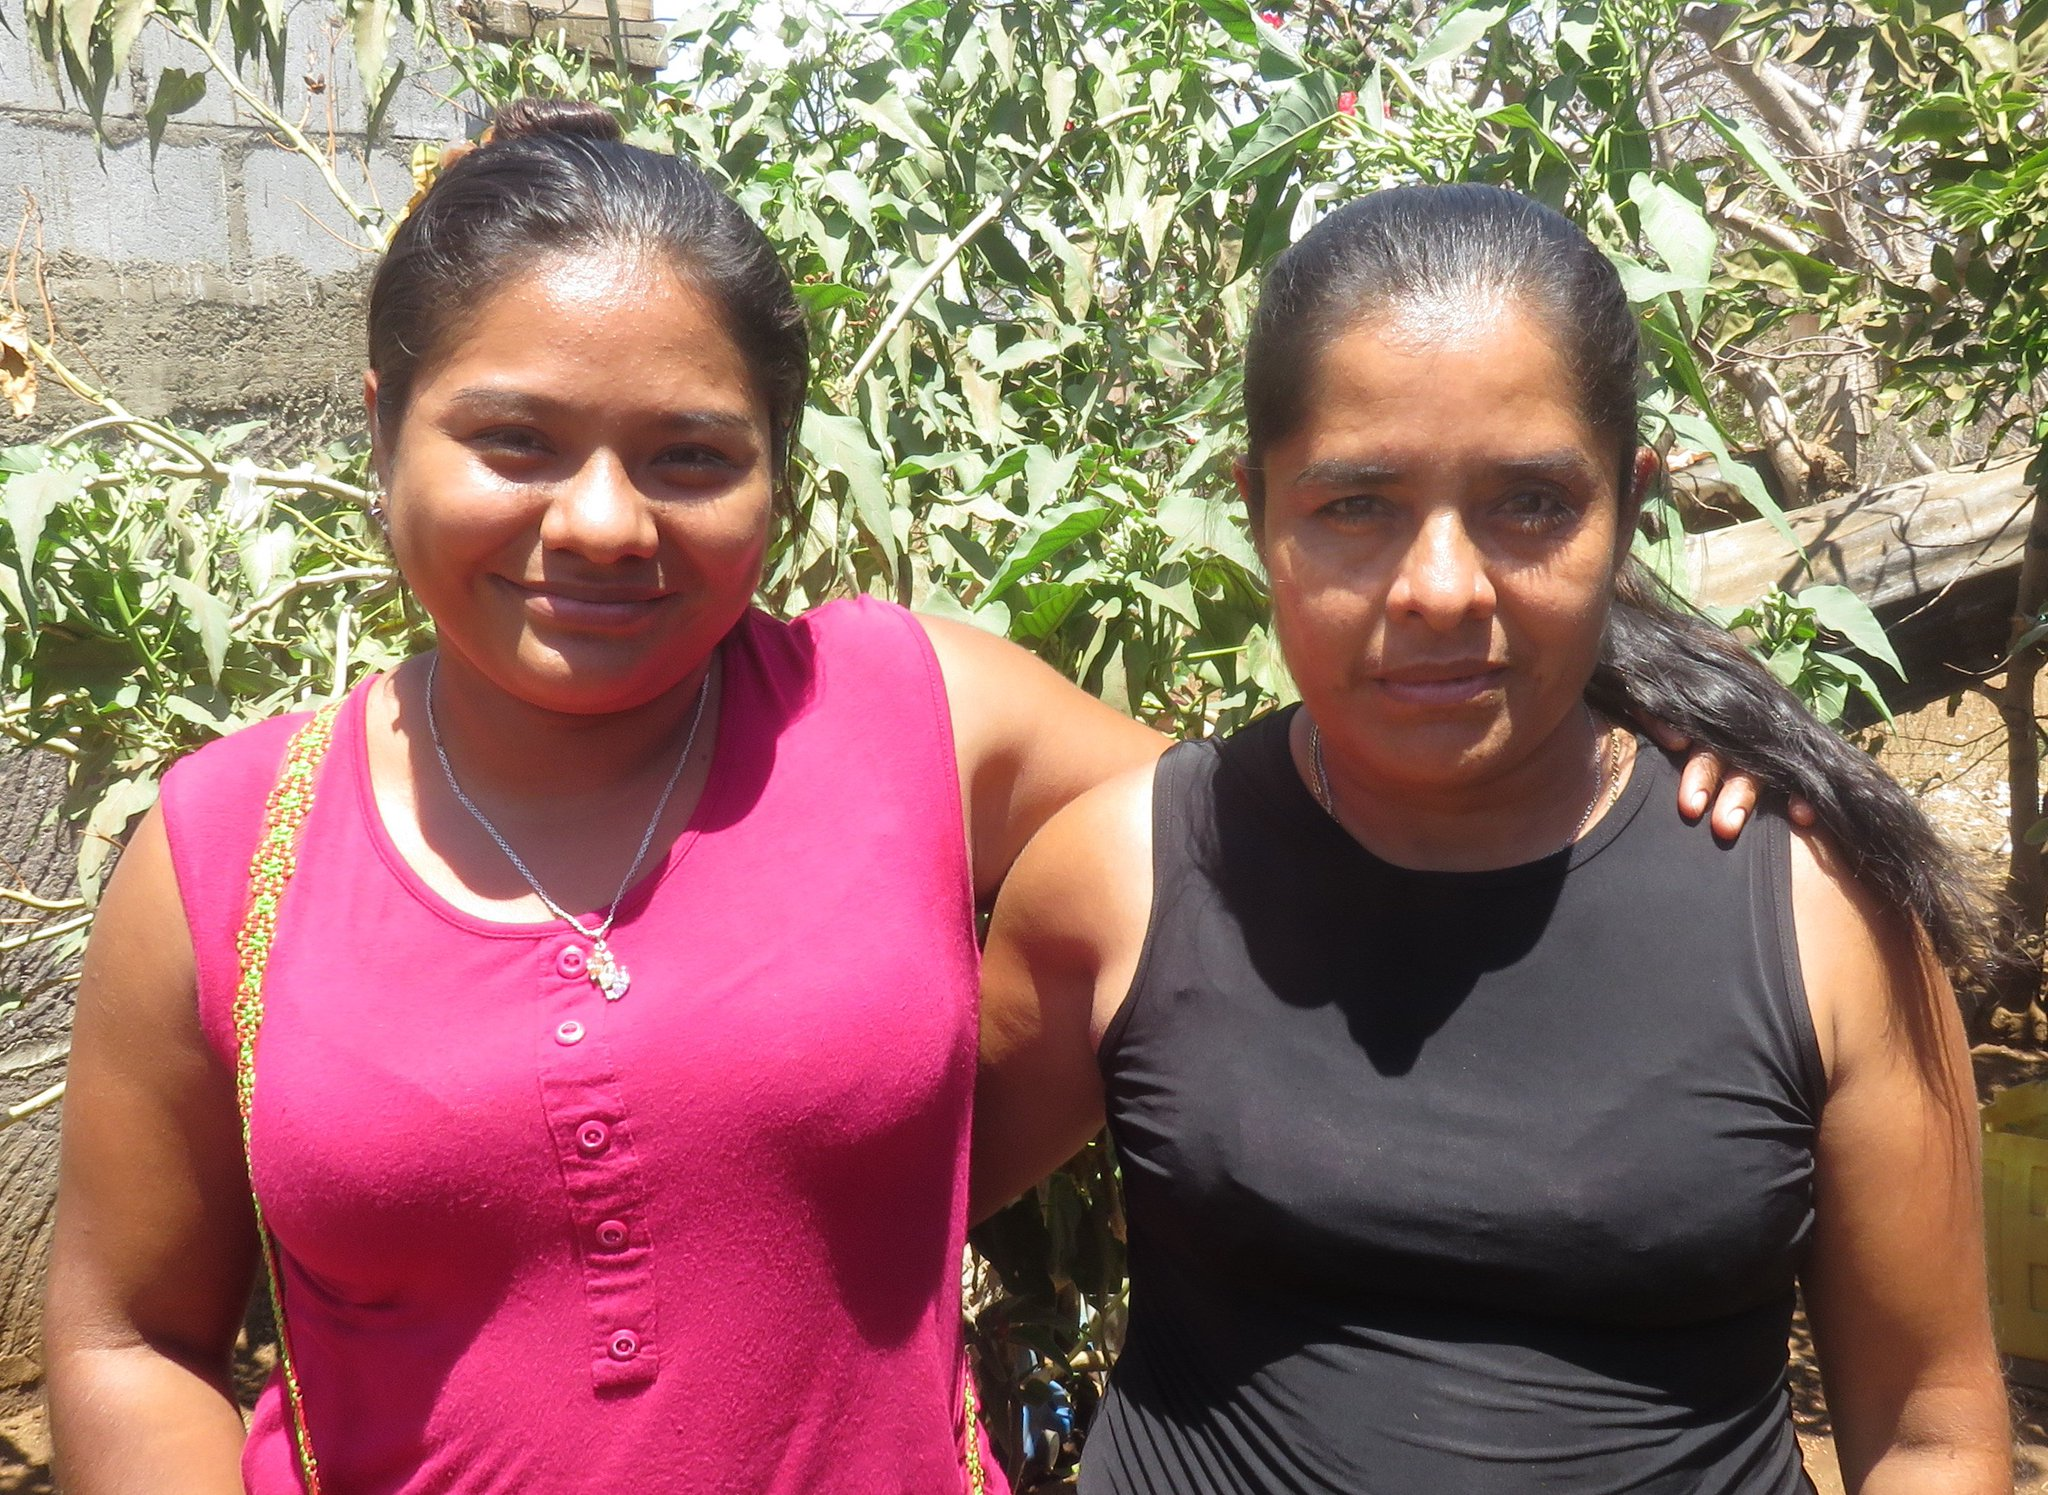 With the help of #ESPERA loans, sisters Verónica and Aracely own a clothing store in Nicaragua. #economicsolidarity https://t.co/gDG0h2xr8h